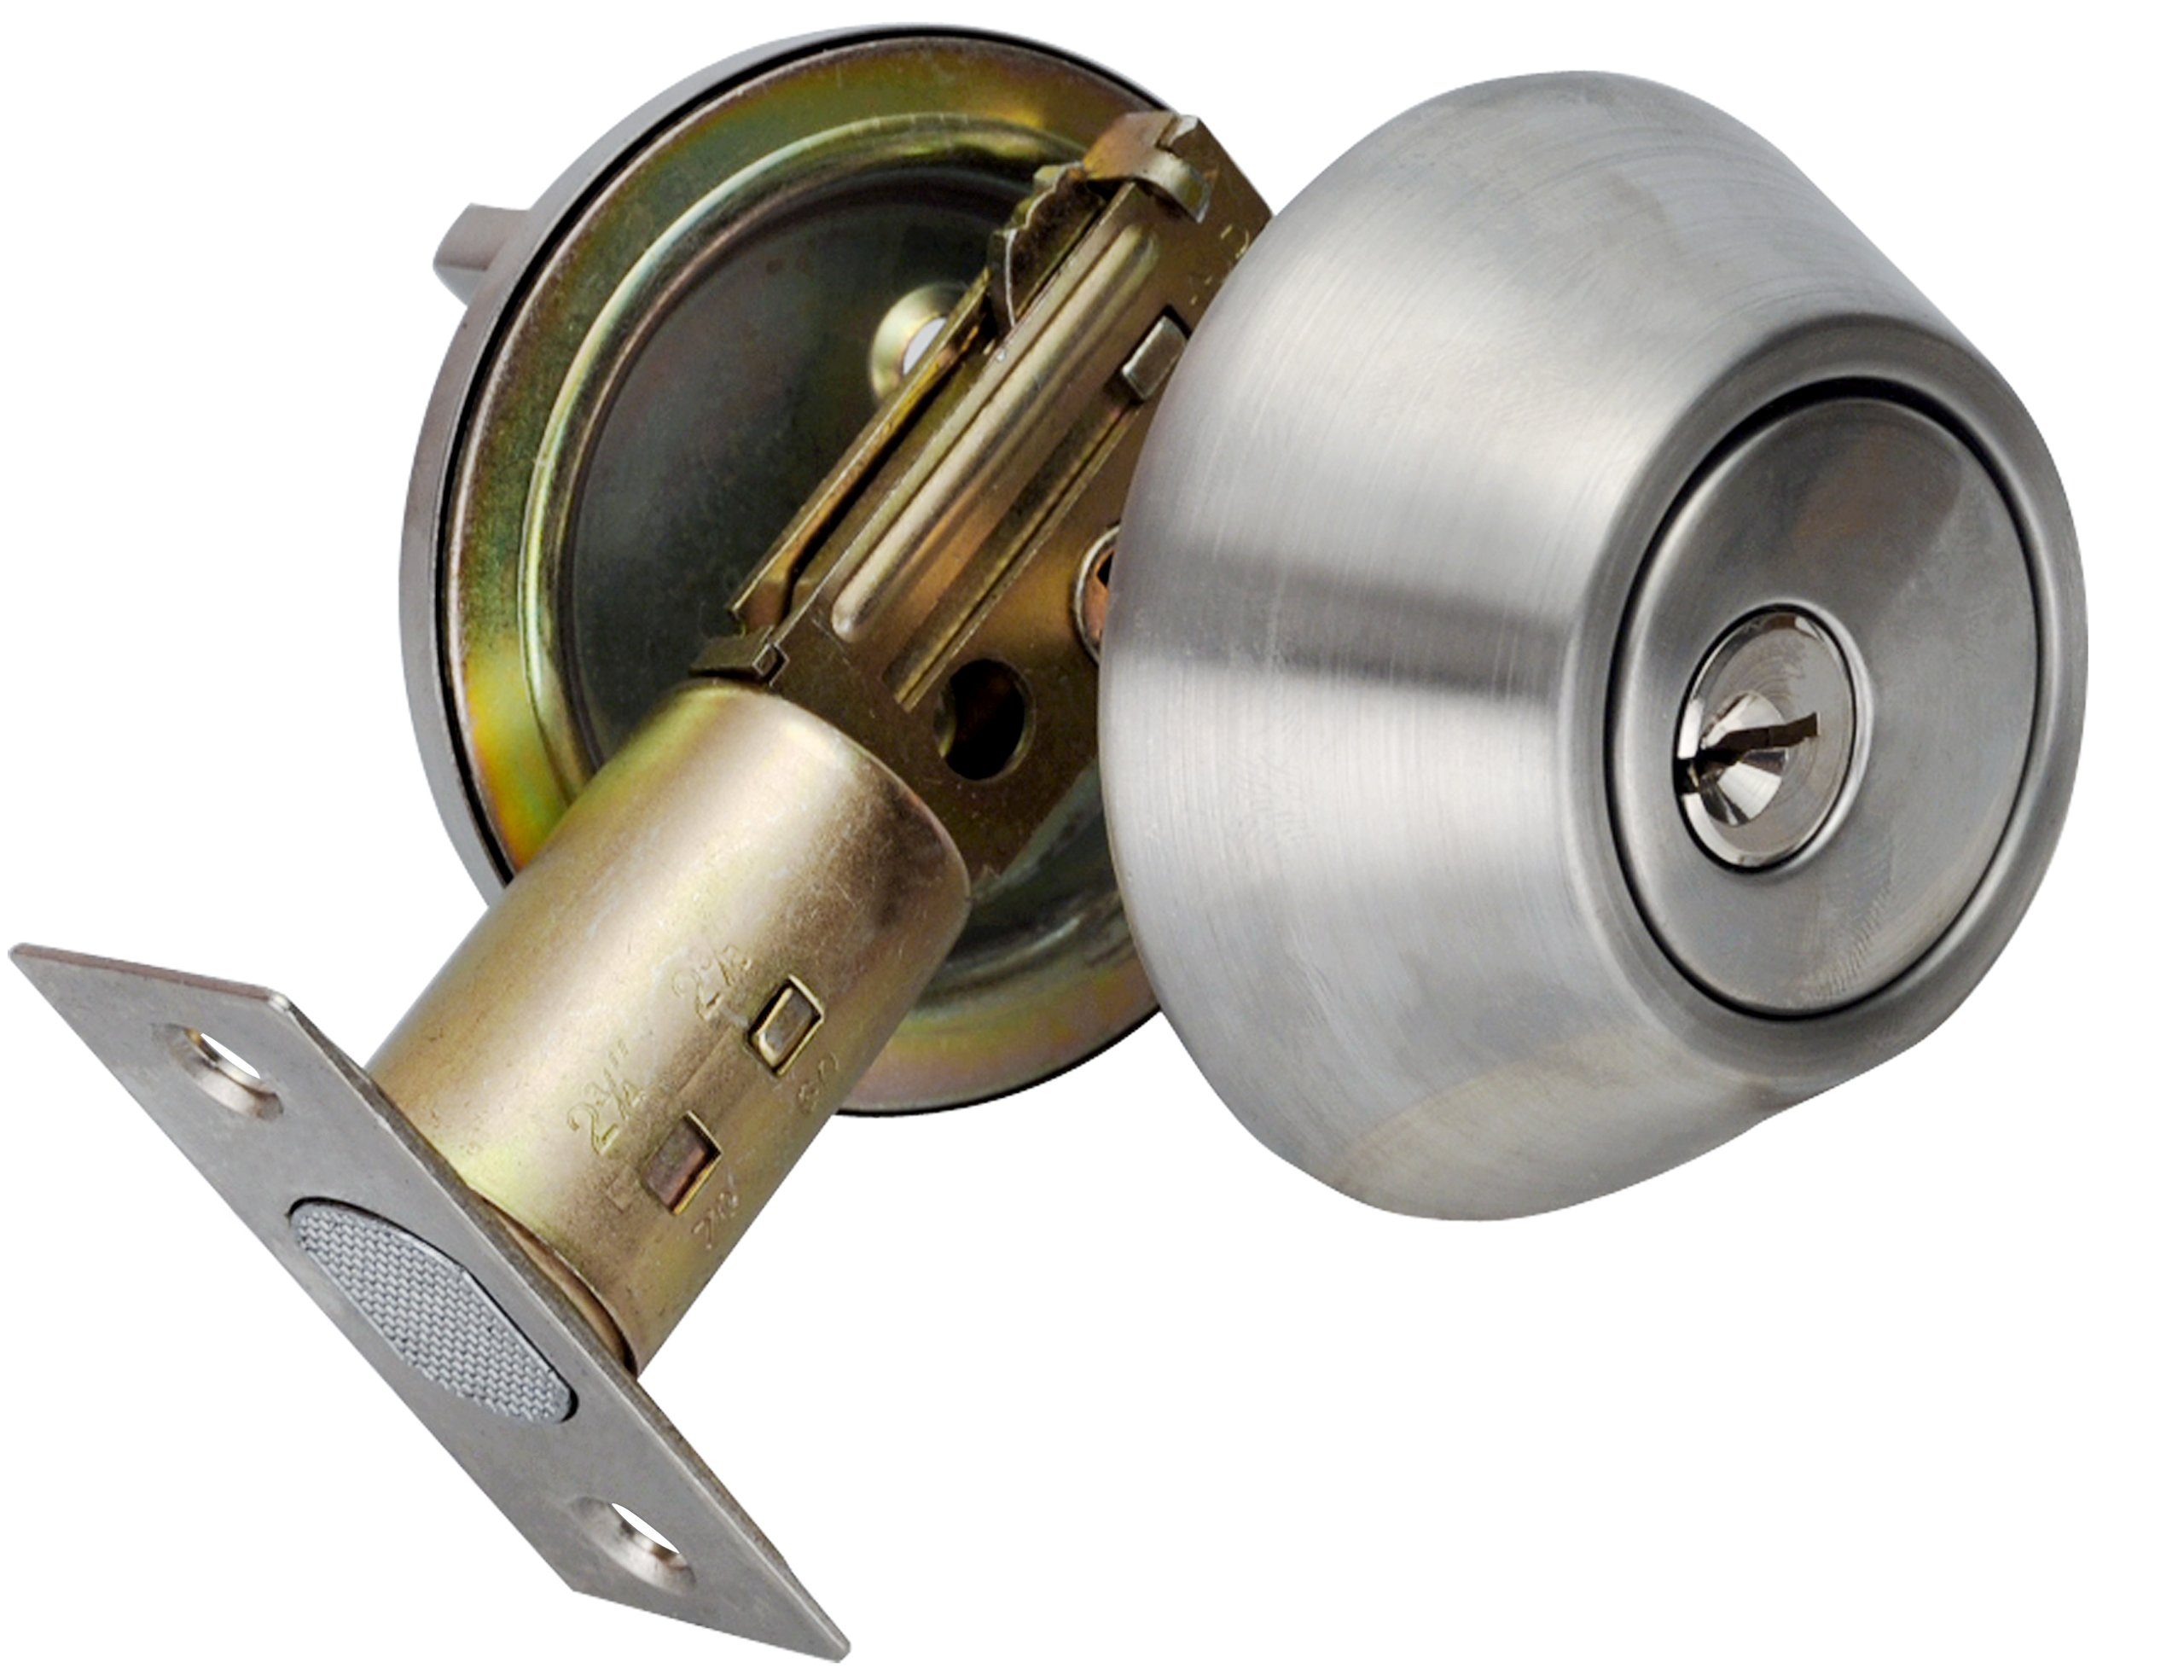 Deadbolt for Exterior Door with Single Cylinder Stainless Steel Finish D101SS,Stainless Steel